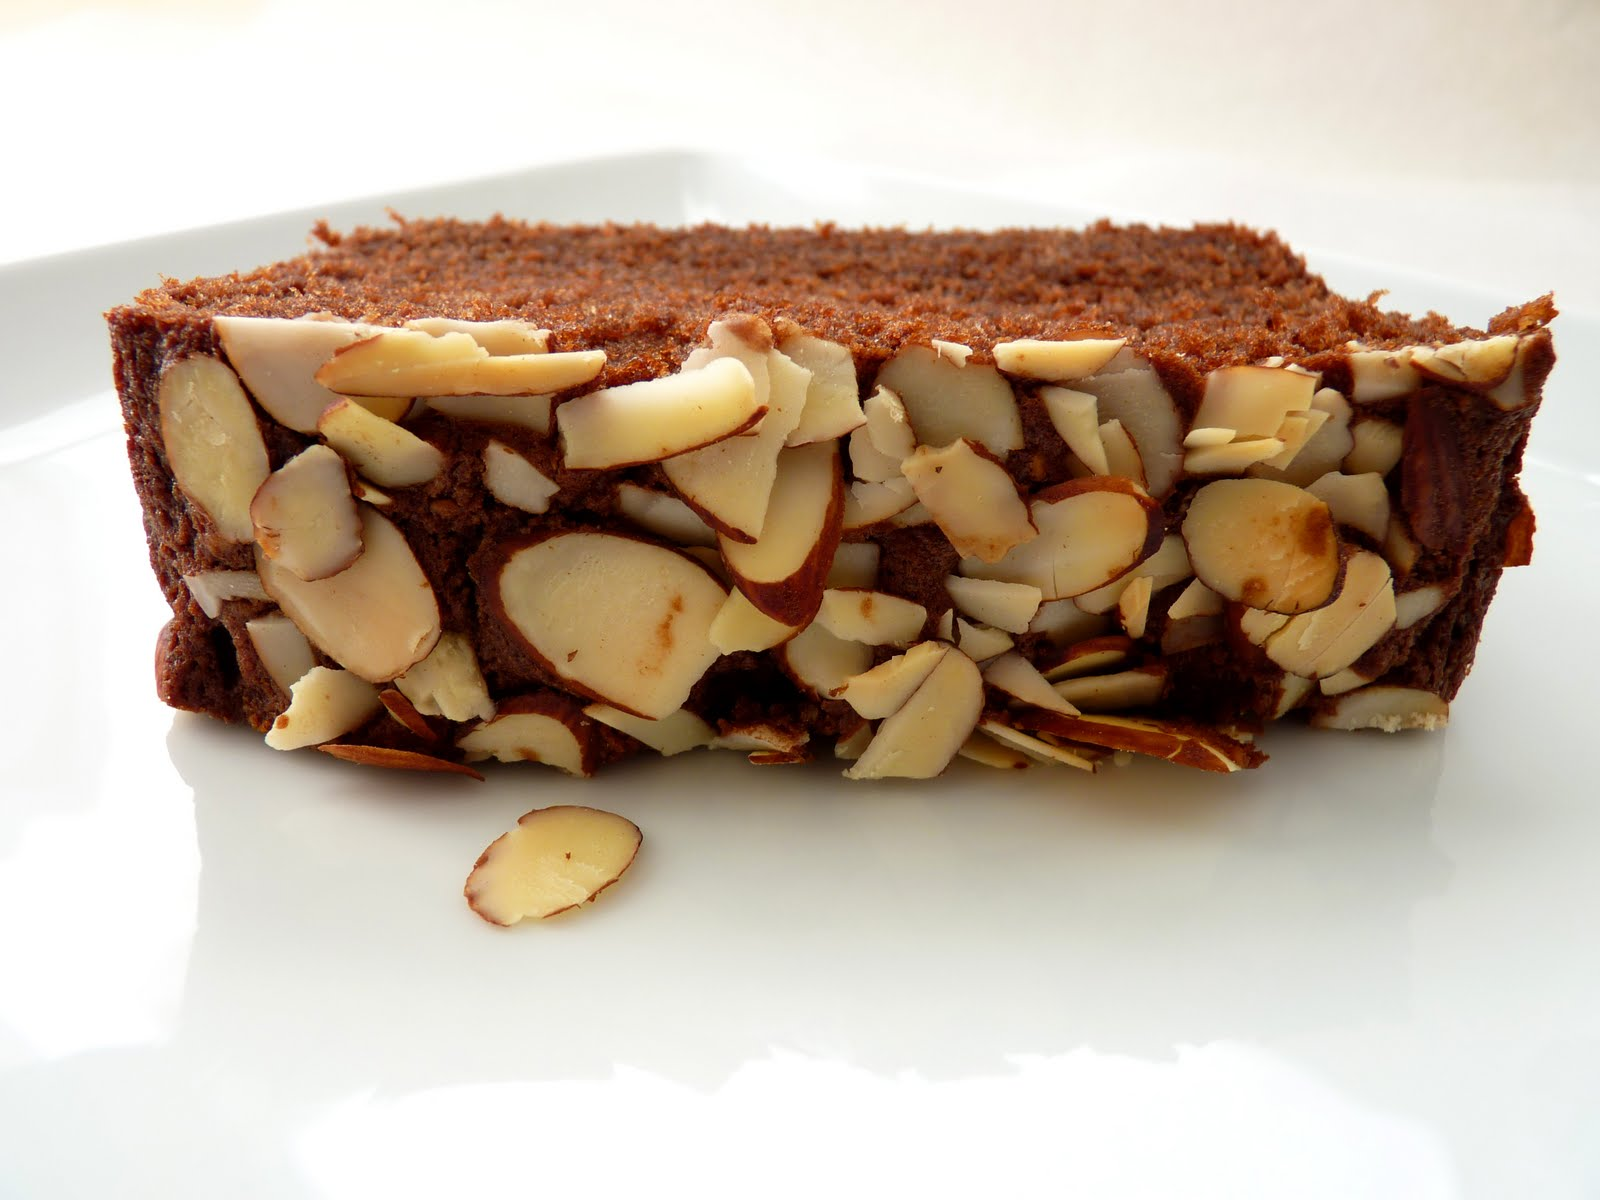 pastry studio: Chocolate Almond Cake